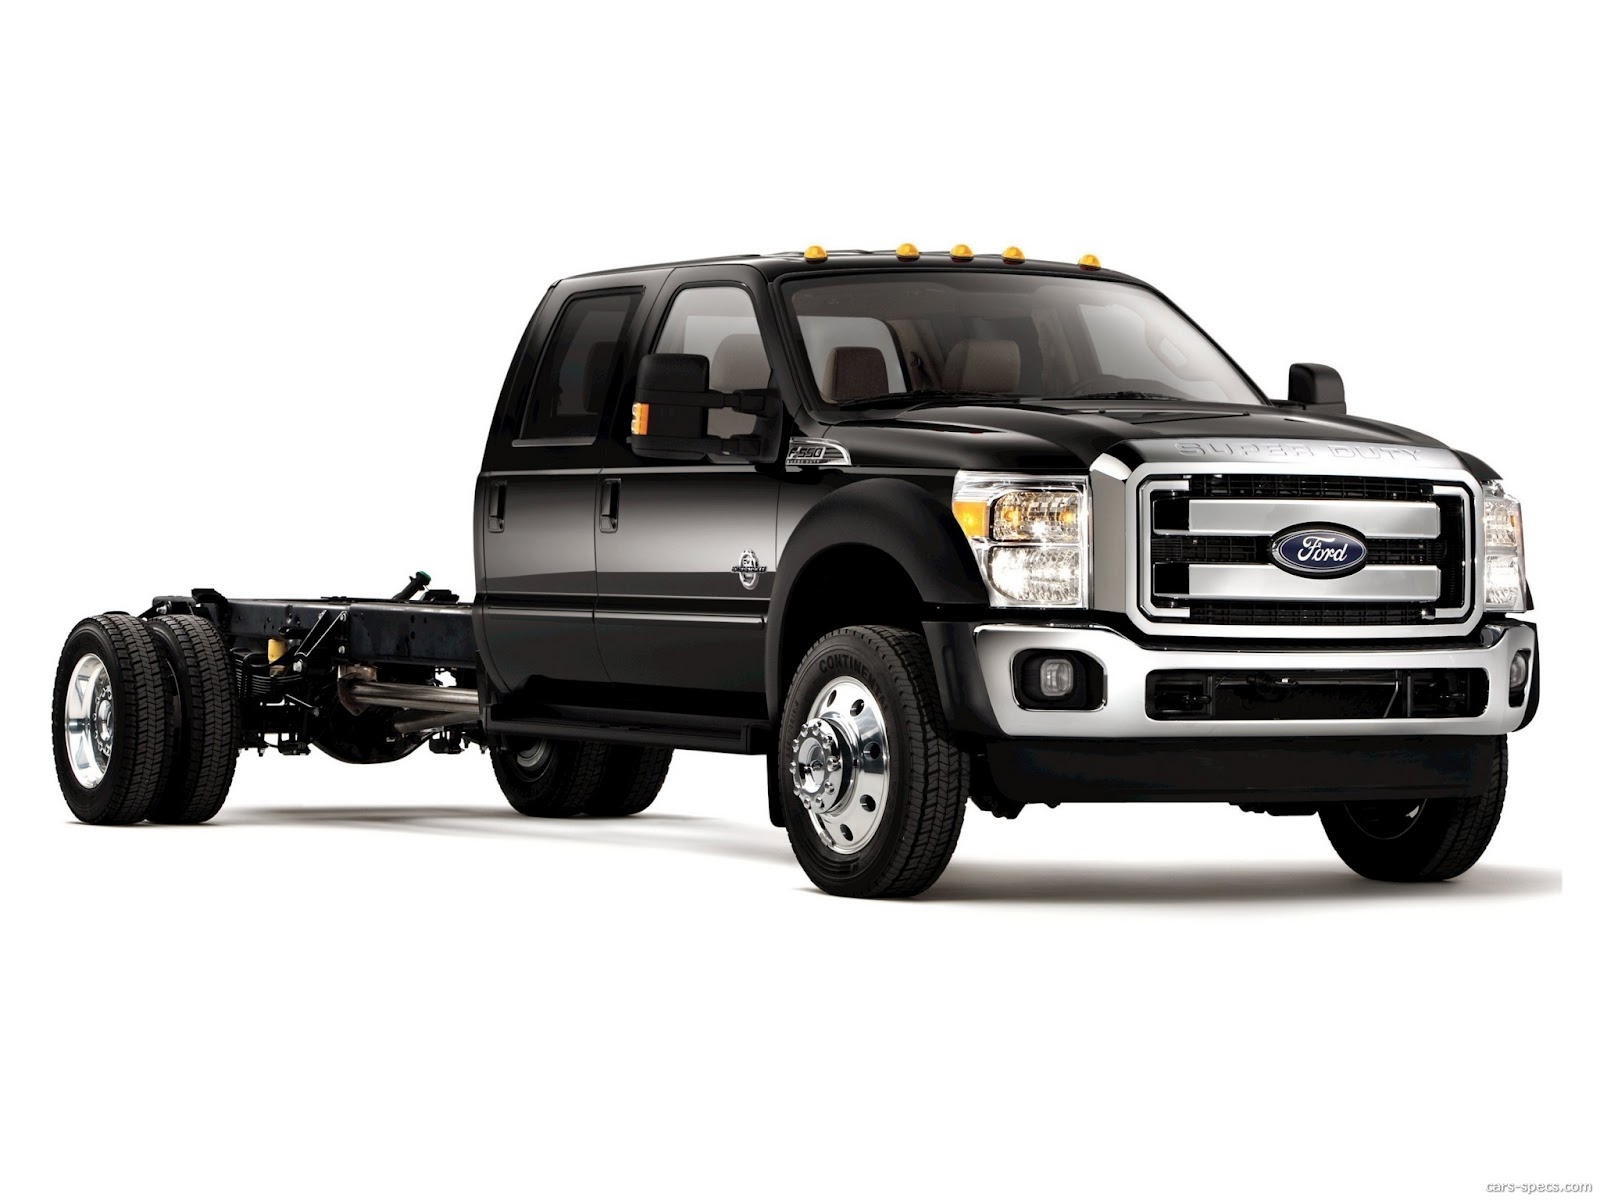 2009 ford f 250 super duty crew cab specifications pictures prices. Black Bedroom Furniture Sets. Home Design Ideas